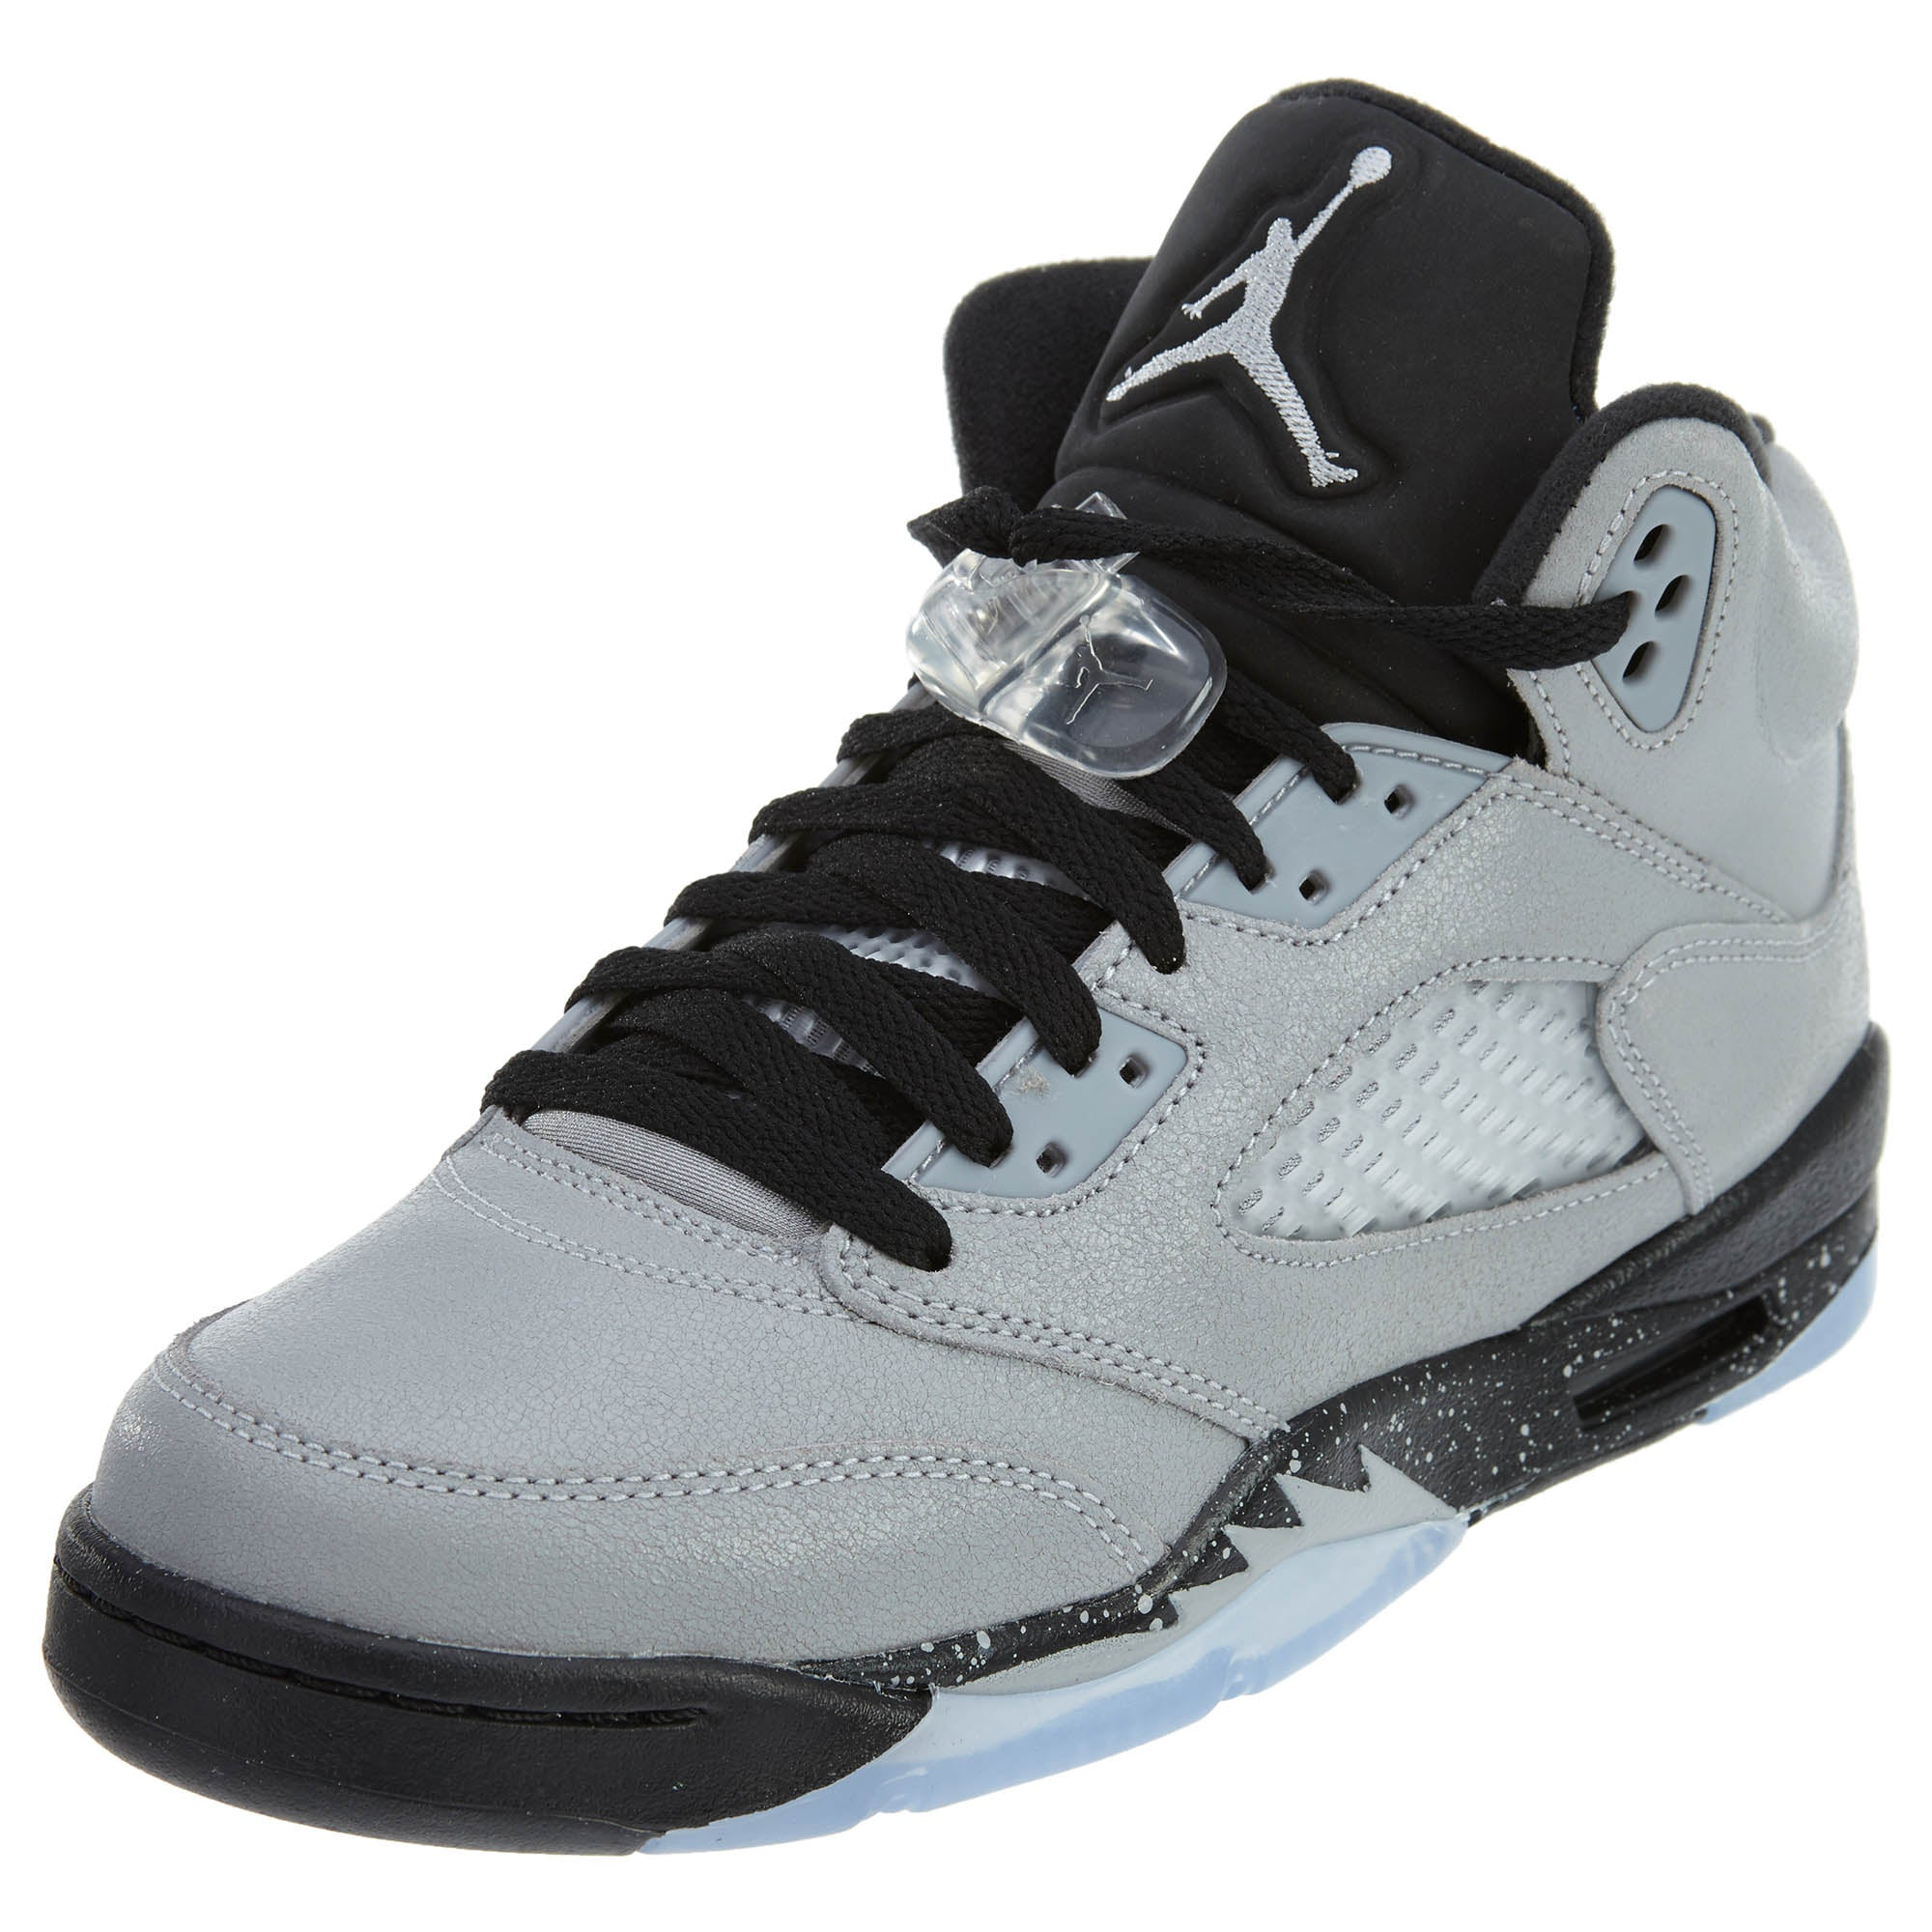 factory authentic f3657 3f1d1 ... discount code for nike air jordan 5 retro gg 5.5y youth 440892 008  2bbfe 87ad5